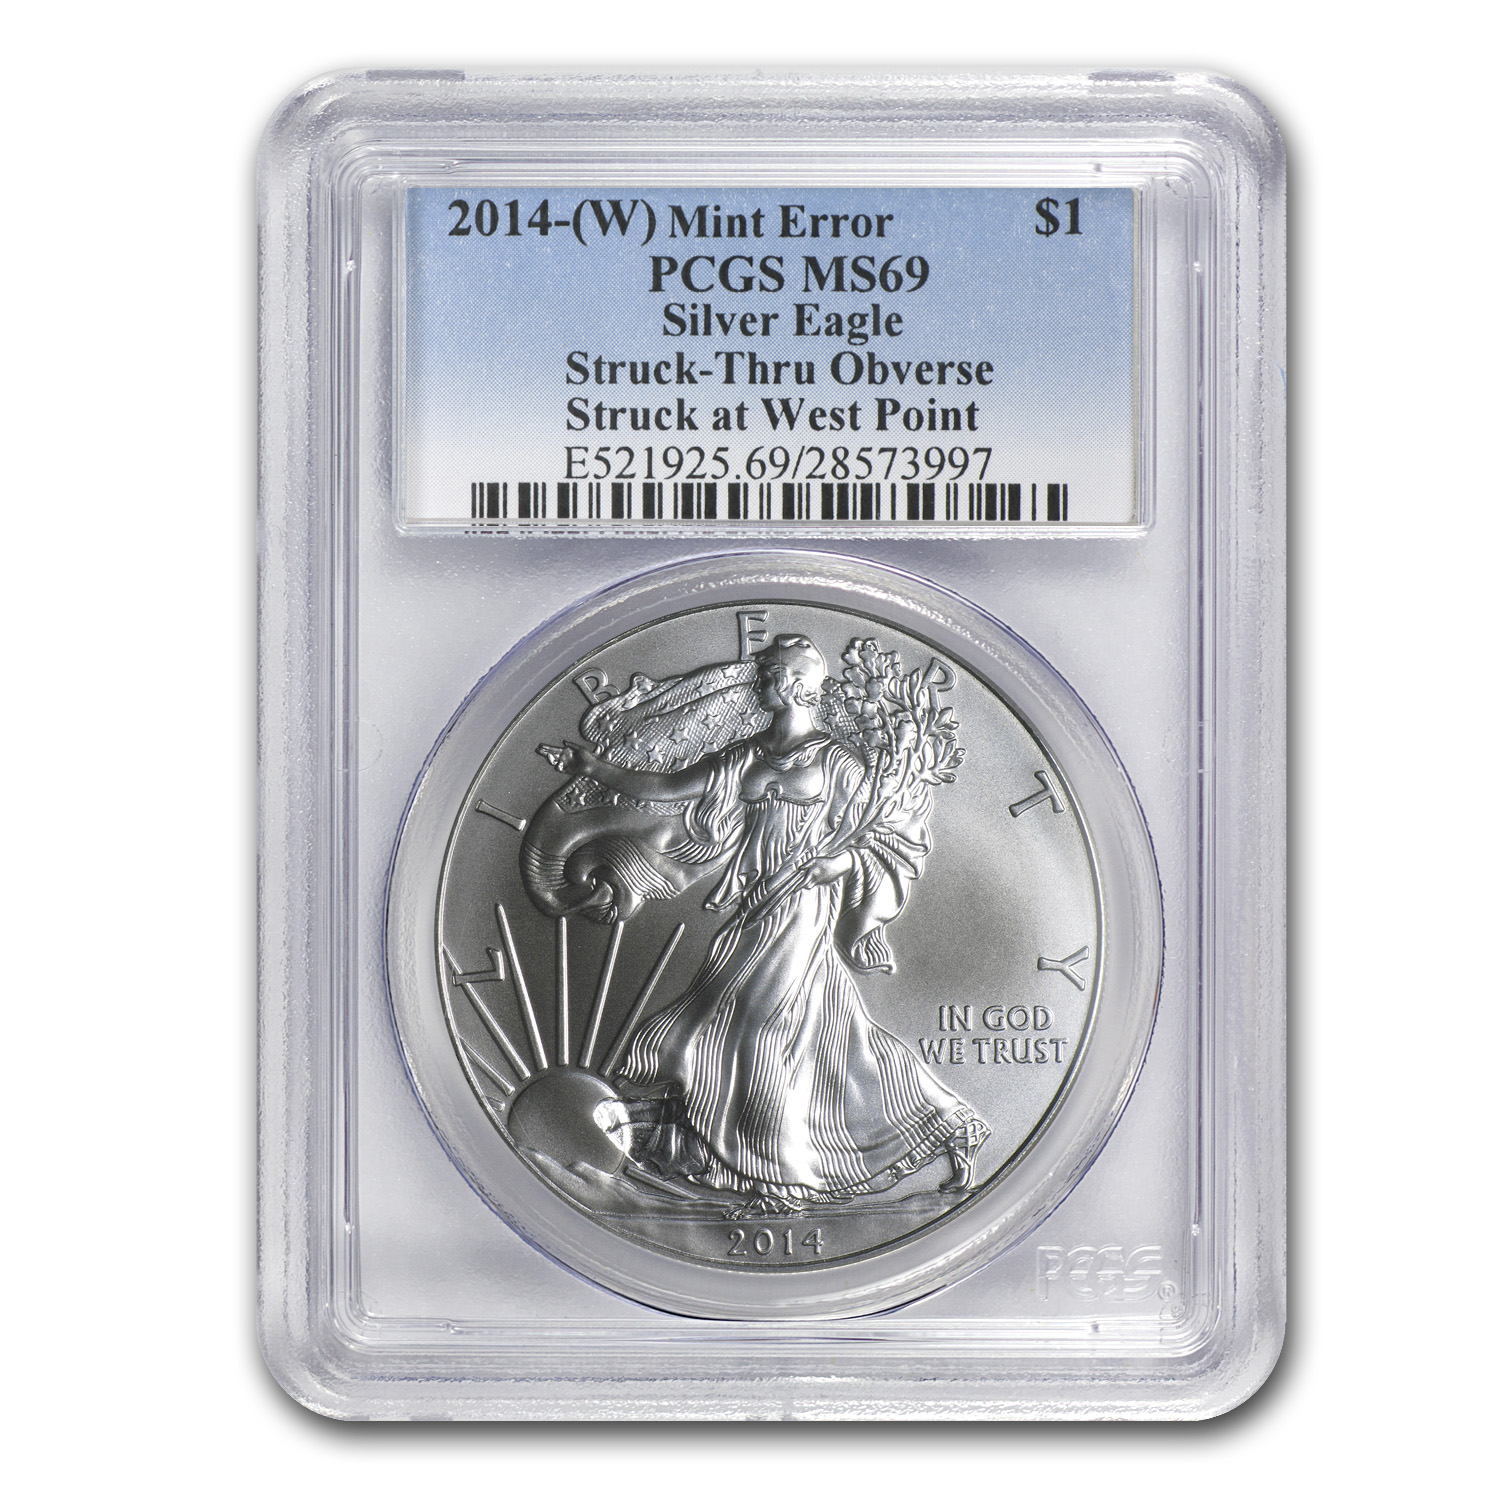 2014 (W) Silver American Eagle MS-69 PCGS Mint Error